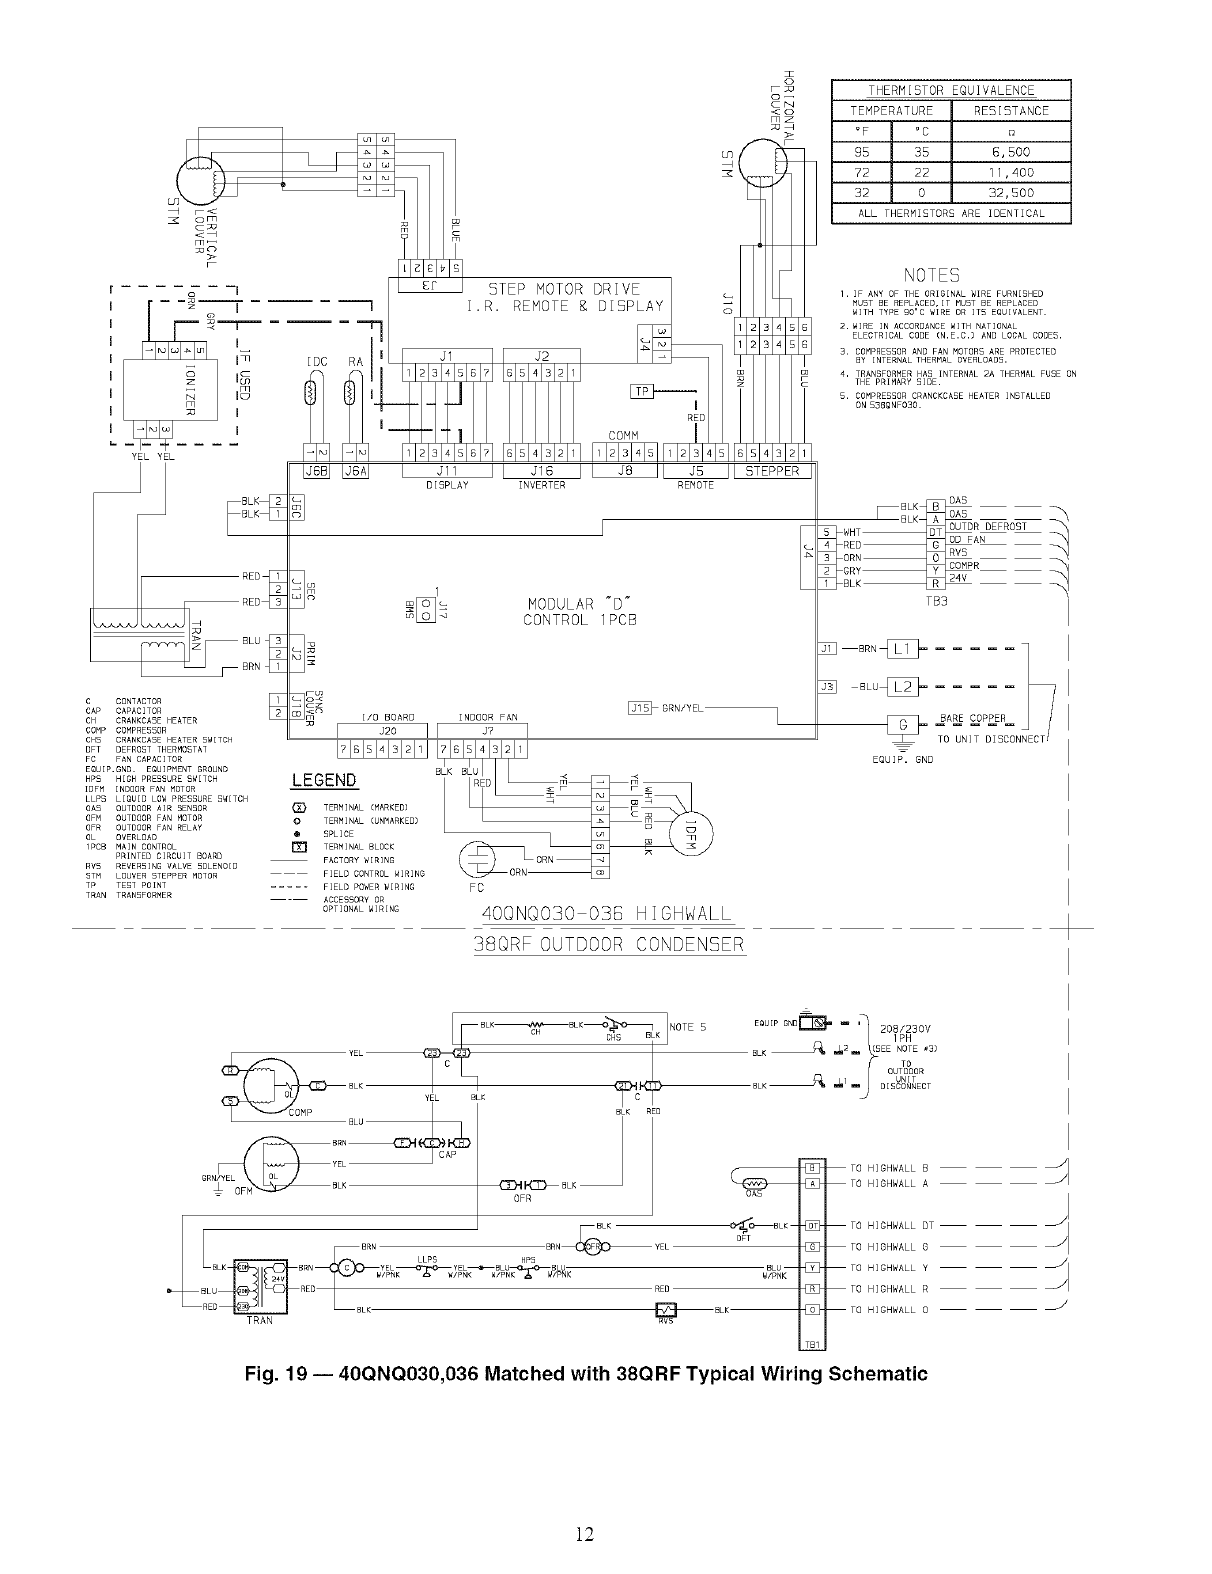 Carrier Air Handler Indoor Blowerevap Manual L0610554 Type 181 Wiring Diagram O